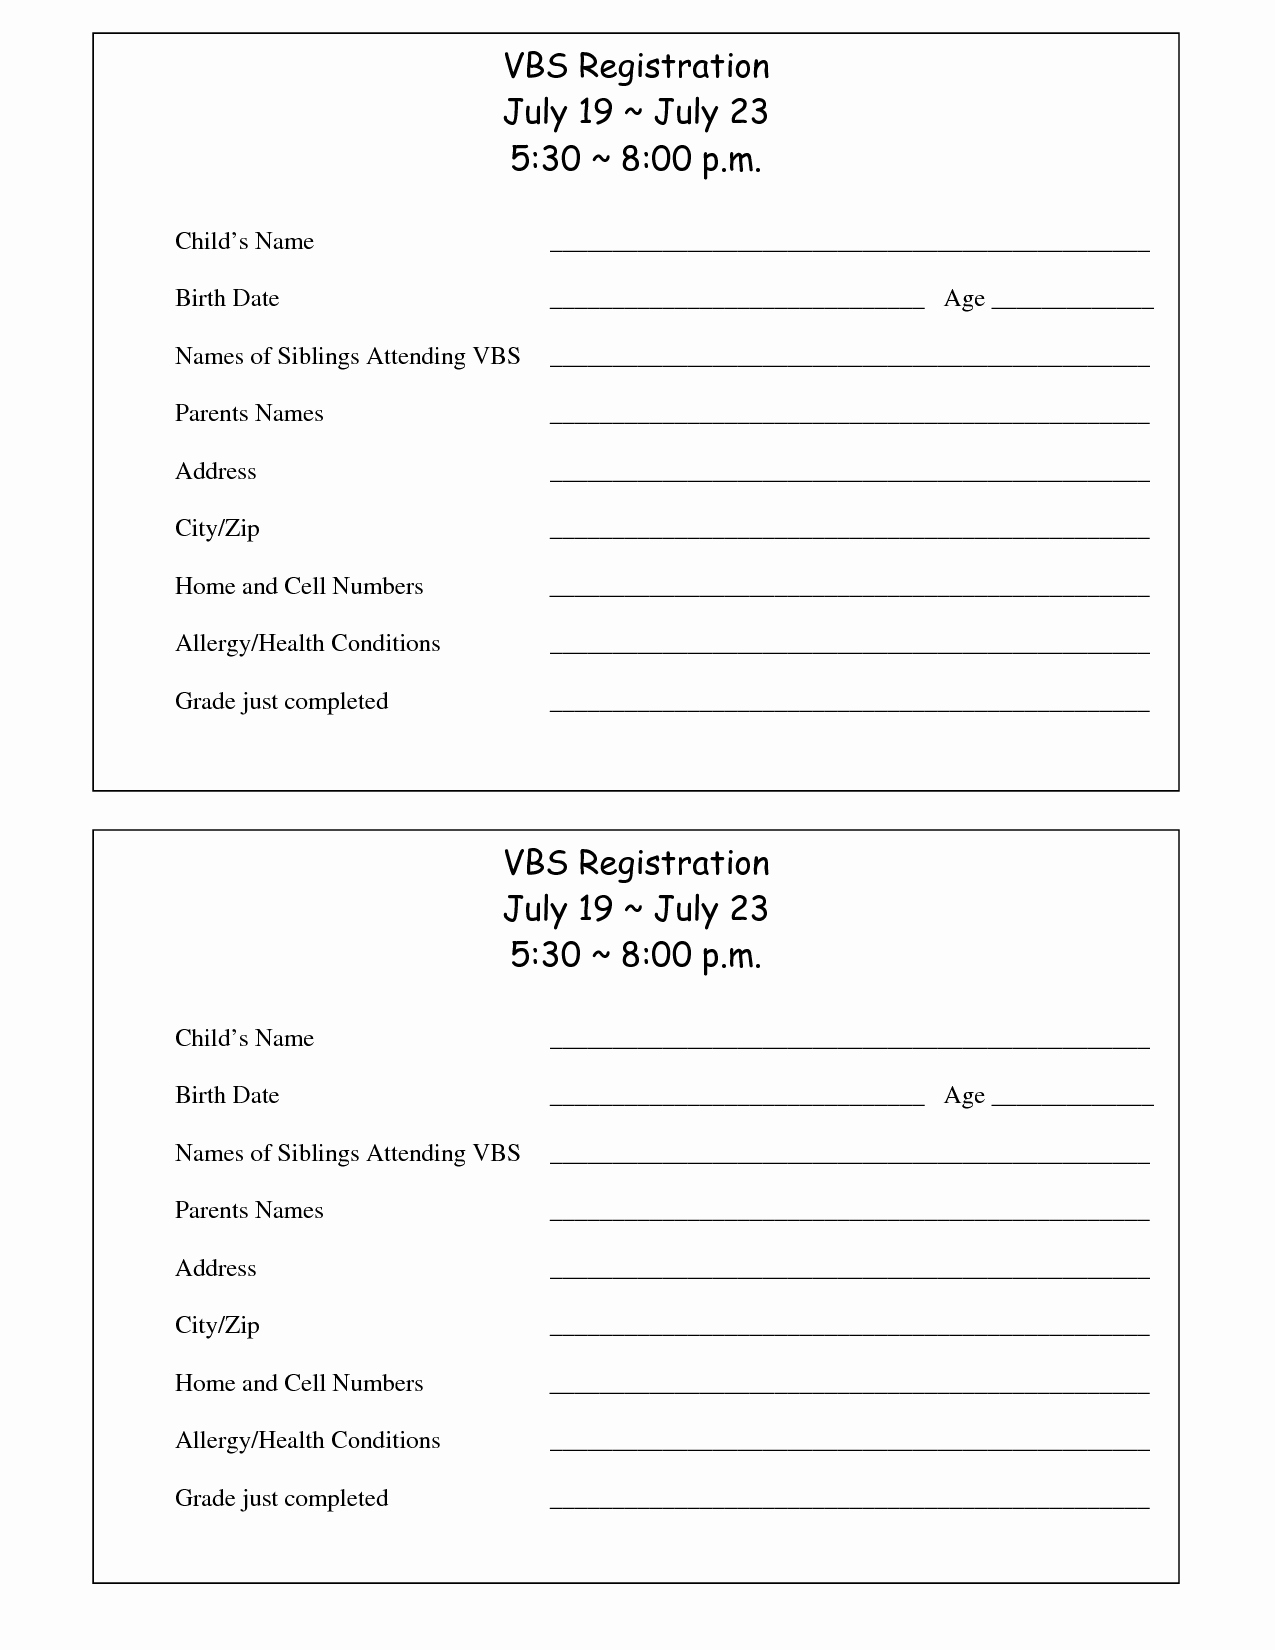 Conference Registration forms Template Luxury event Registration form Template Word Bamboodownunder